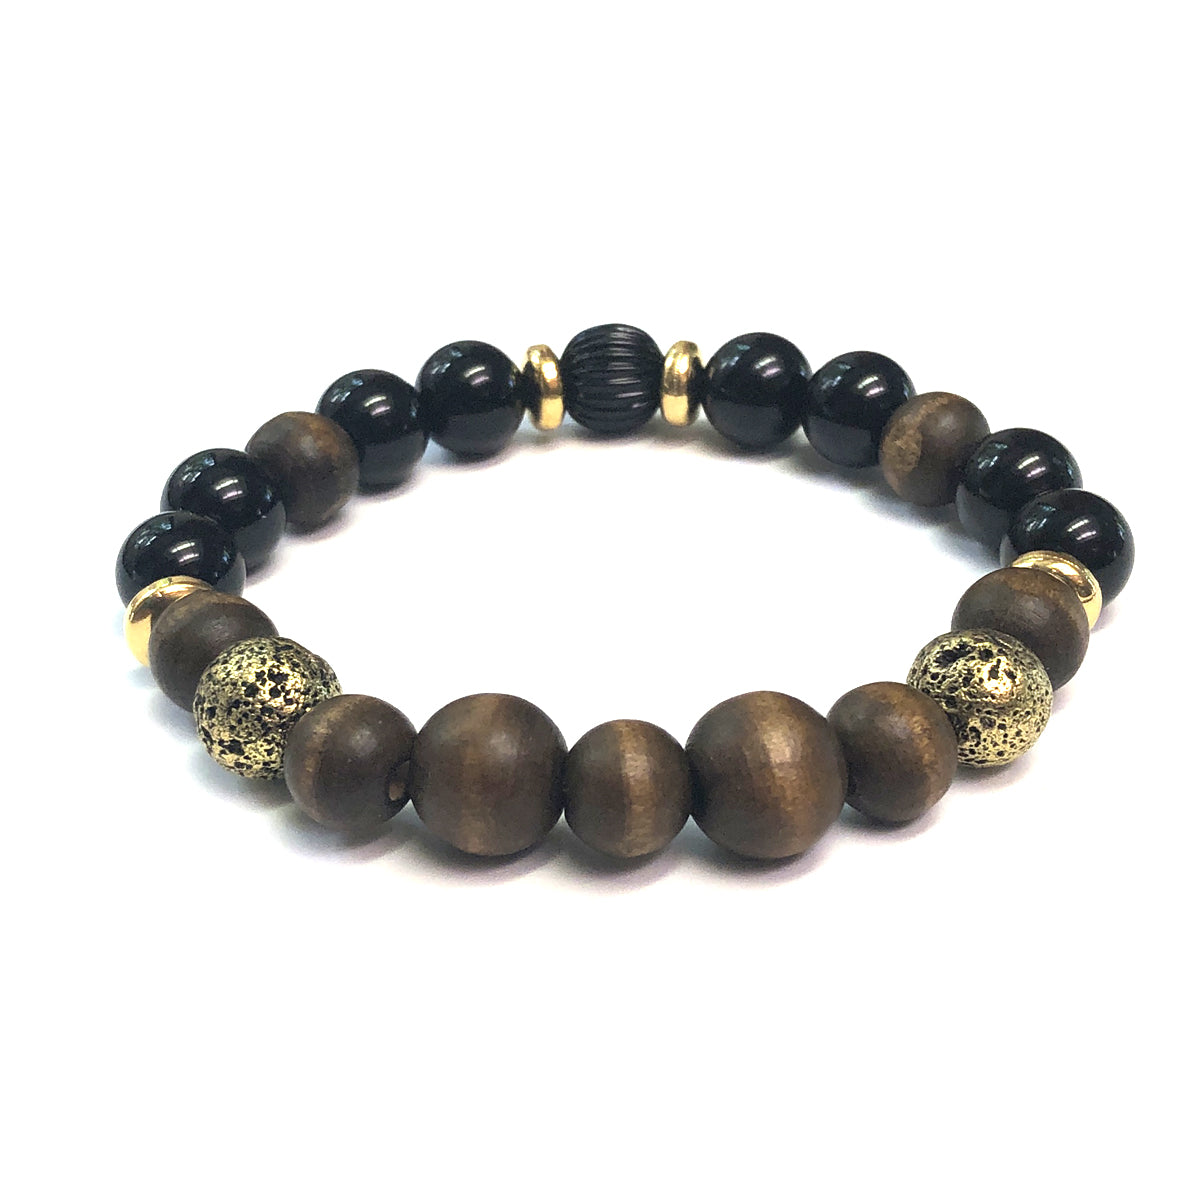 The Woody Bracelet by Mancessories features Warm Brown Wooden Beads, Antique Gold Finished Lava and Black Onyx Beads.